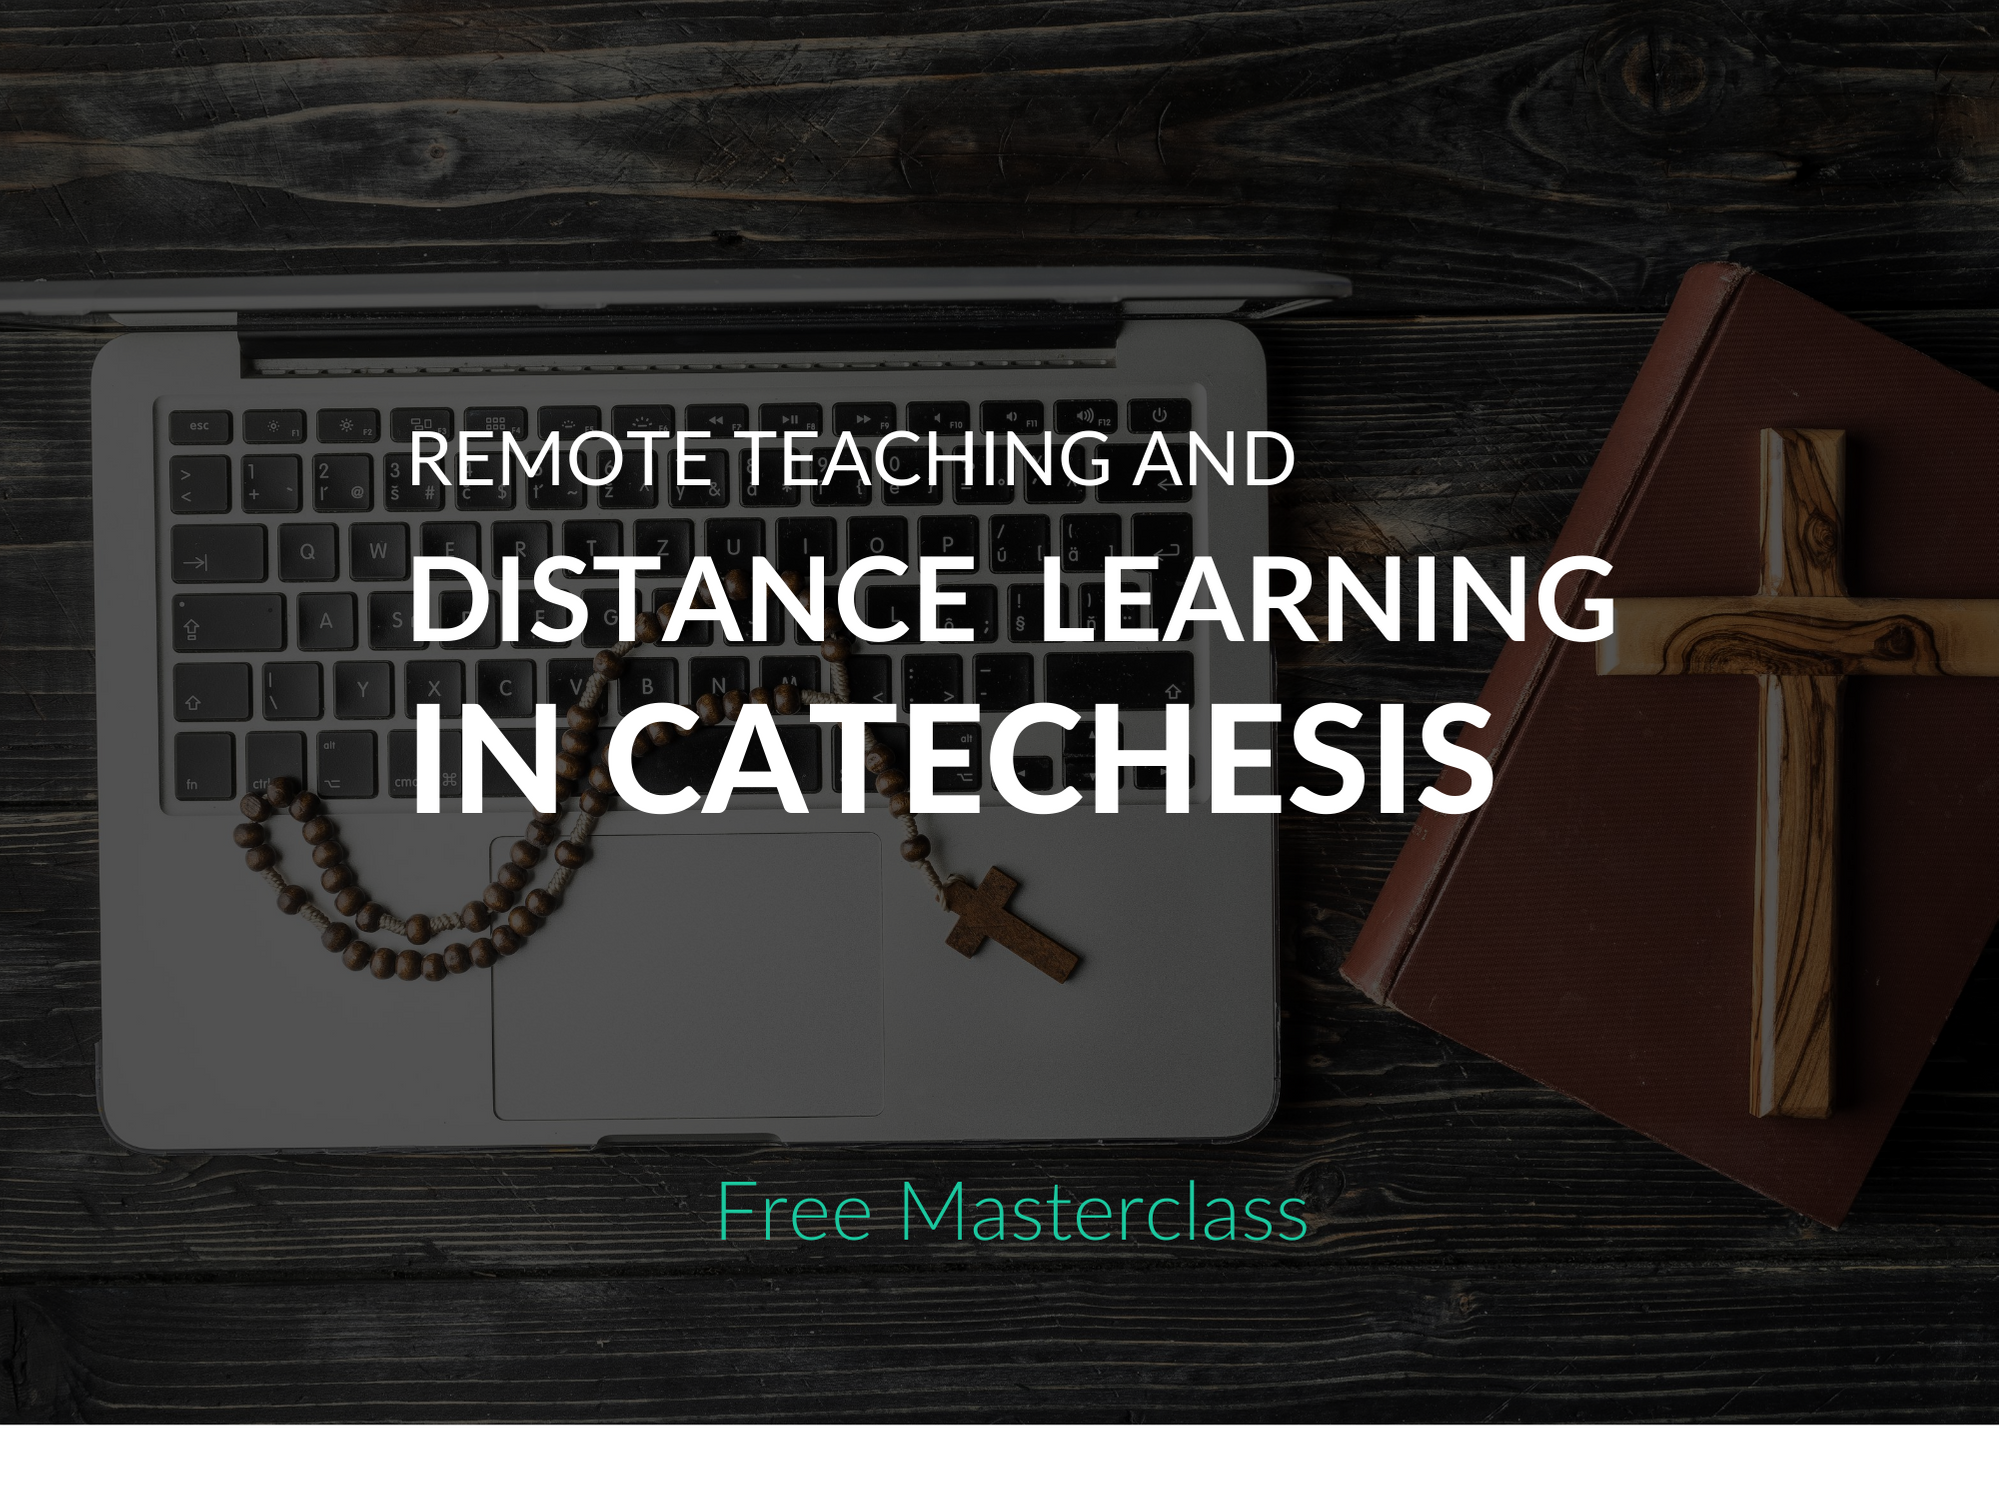 digital-catechesis-remote-teaching-distance-learning-in-catechesis-masterlcass-art